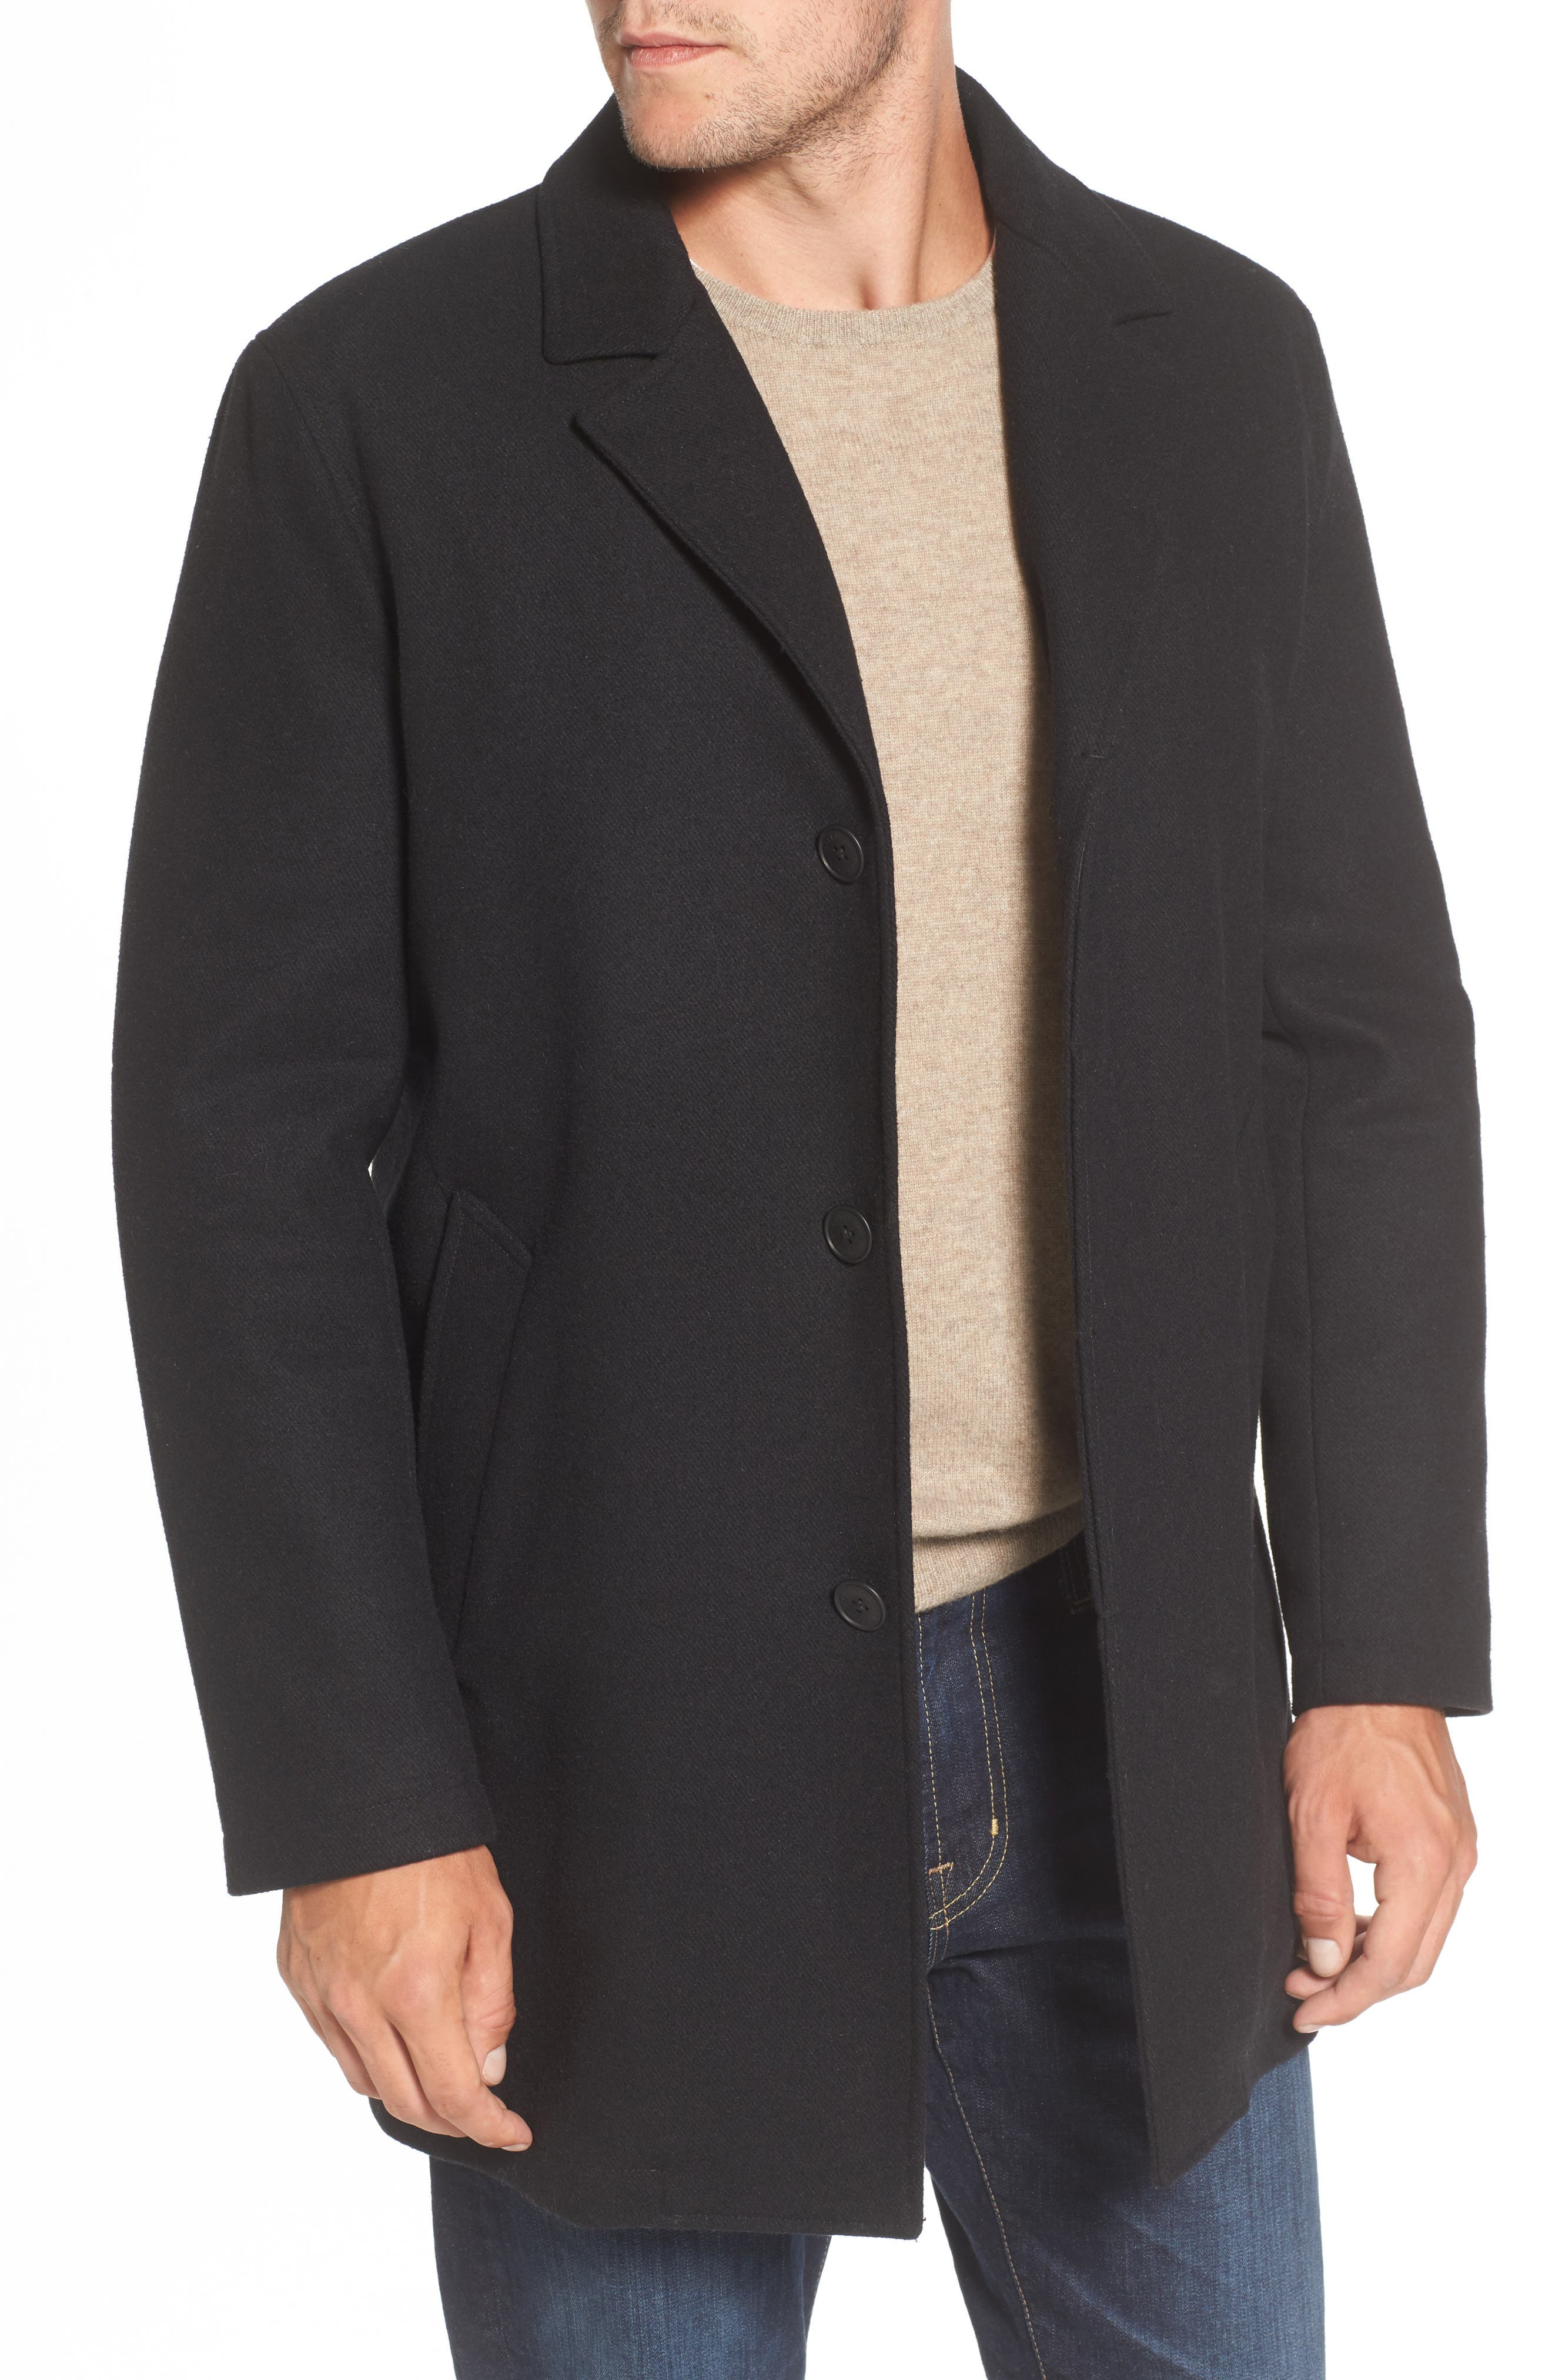 Water Repellent Jacket with Inset Bib & Faux Fur Lining,                             Alternate thumbnail 4, color,                             Black